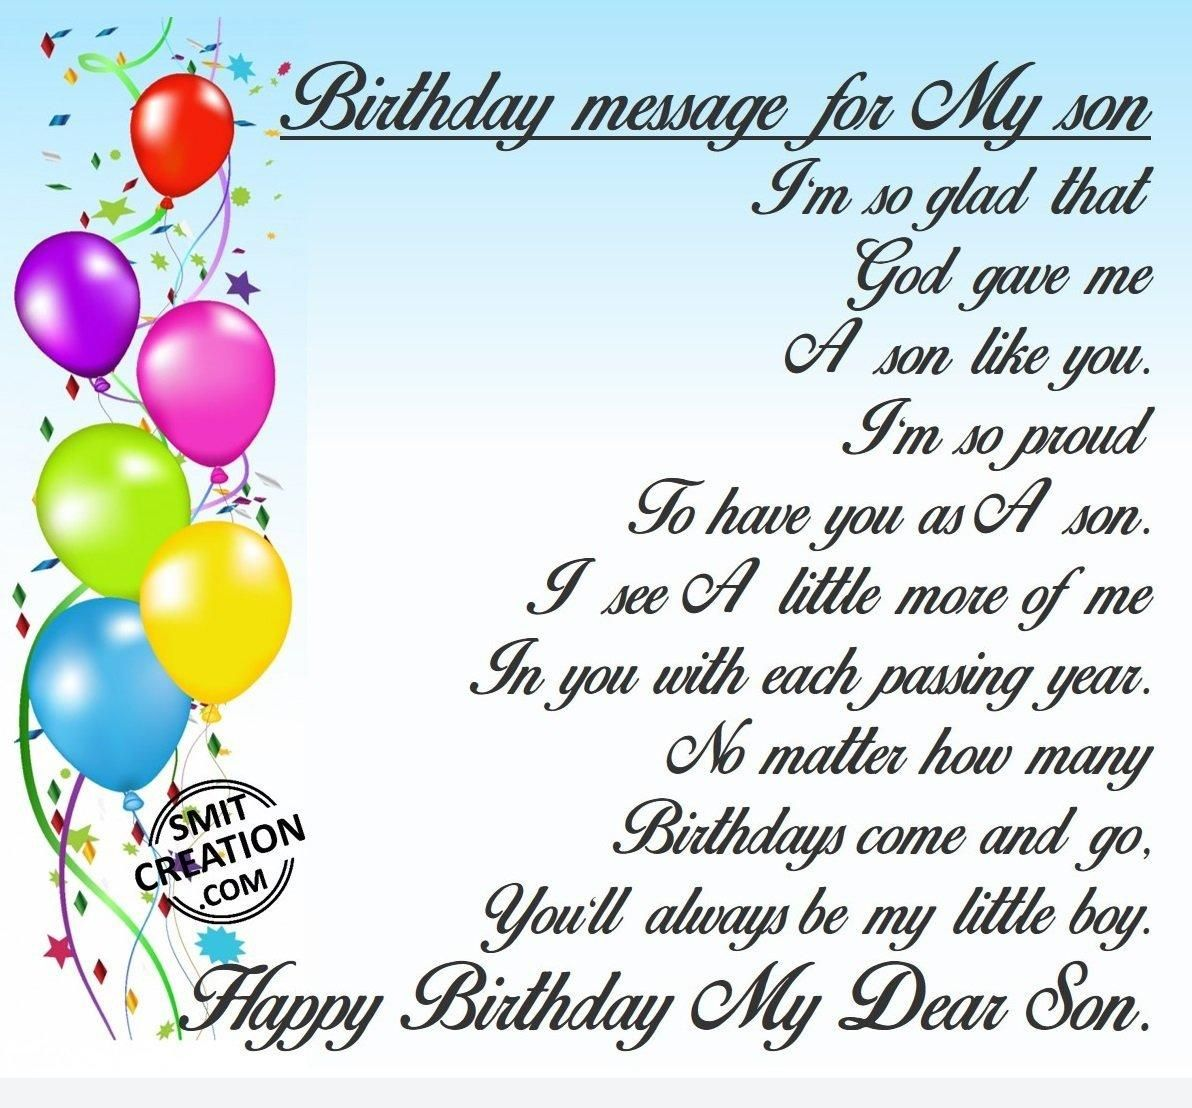 birthday wishes for facebook for son Birthday message